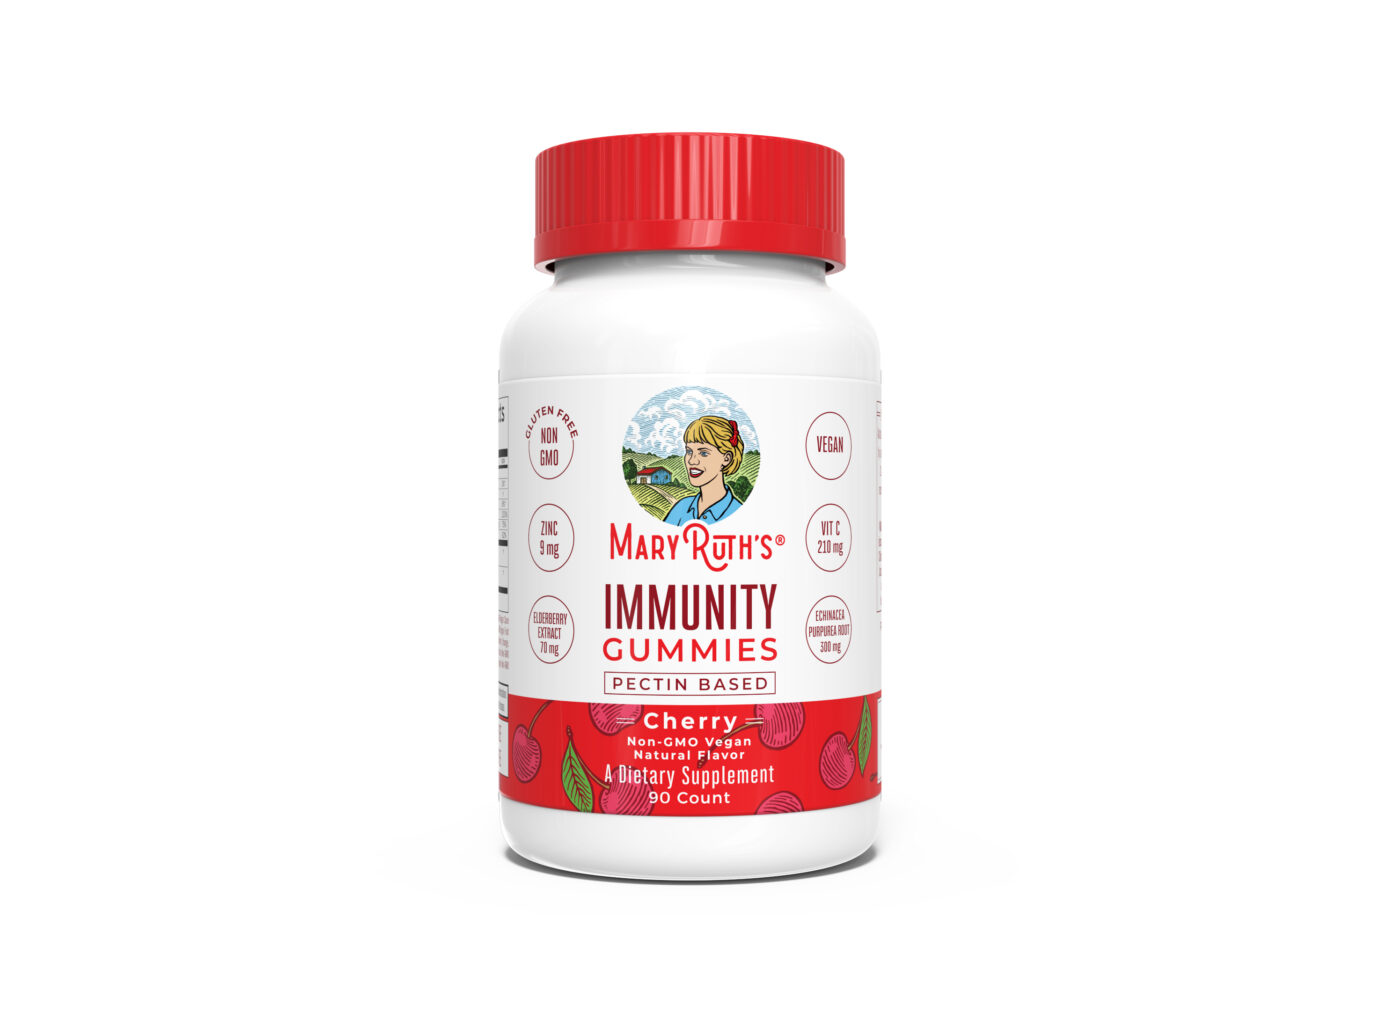 Mary Ruth's Immunity Gummies